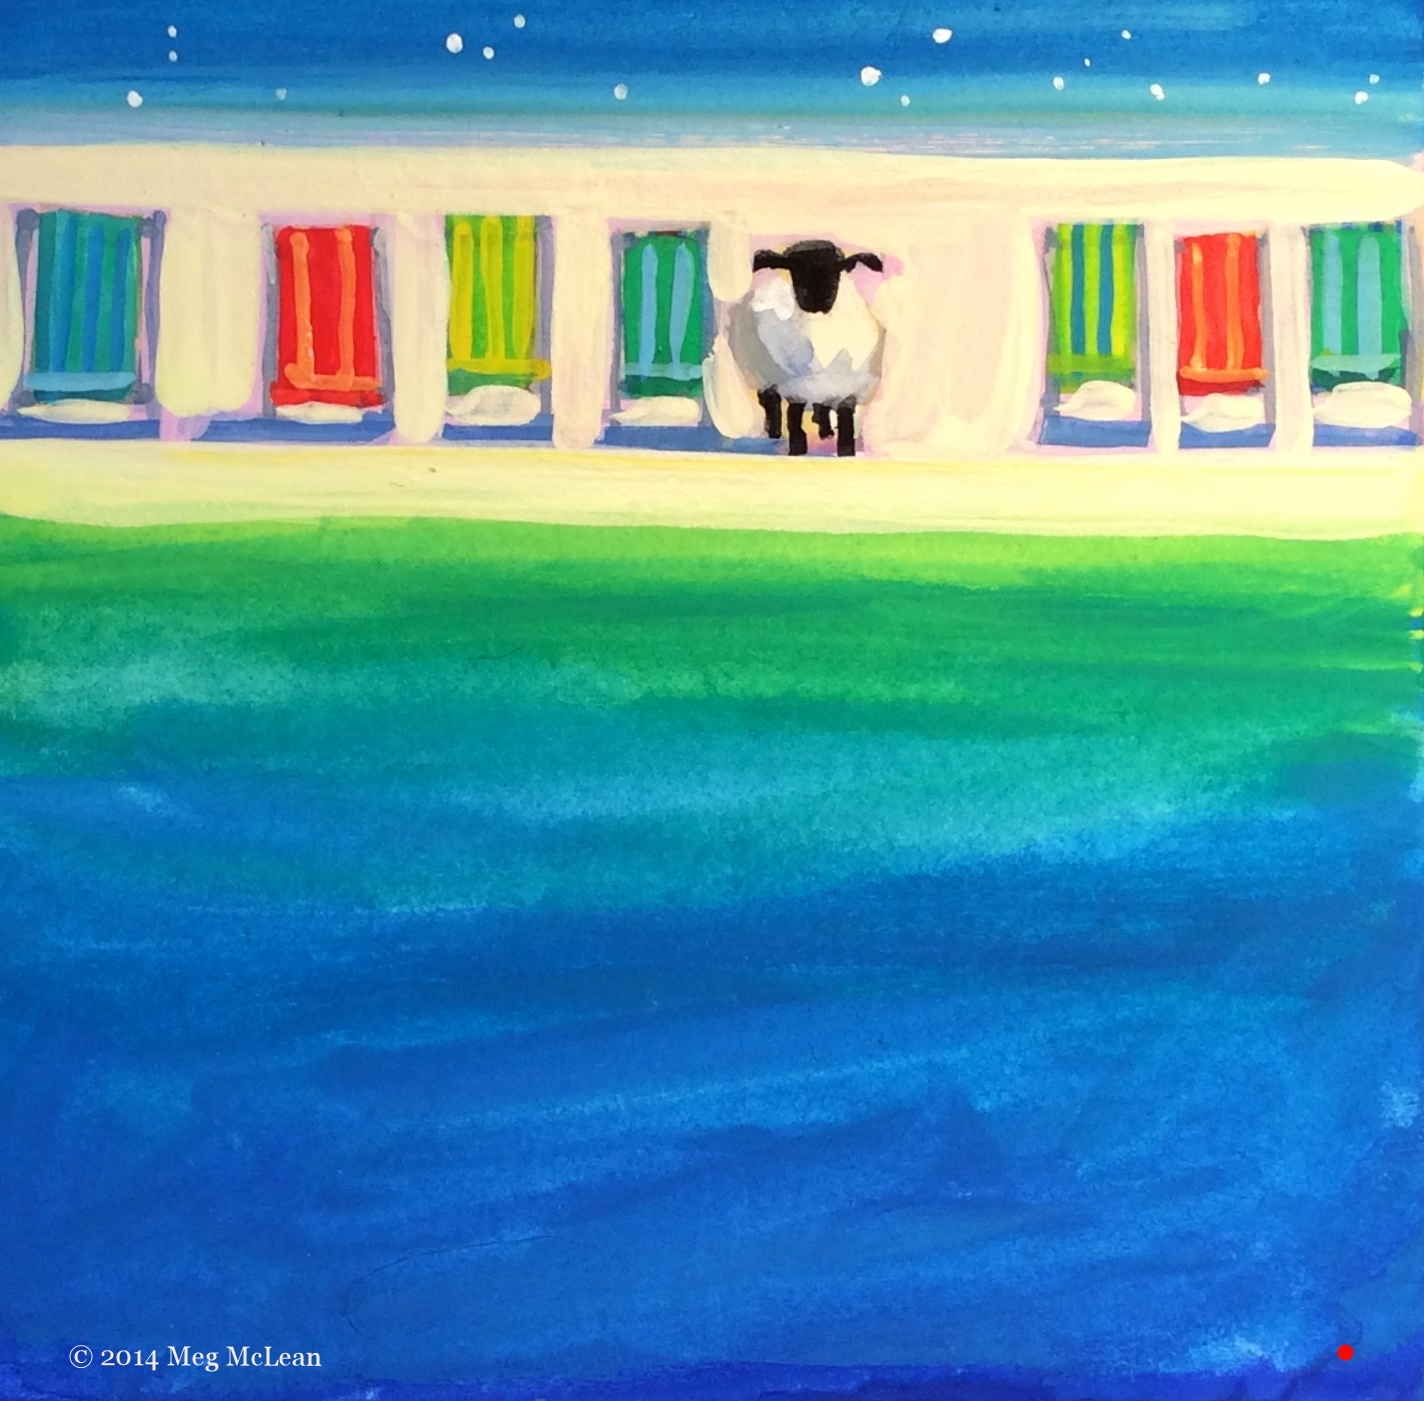 Meg McLean deck chair sheep